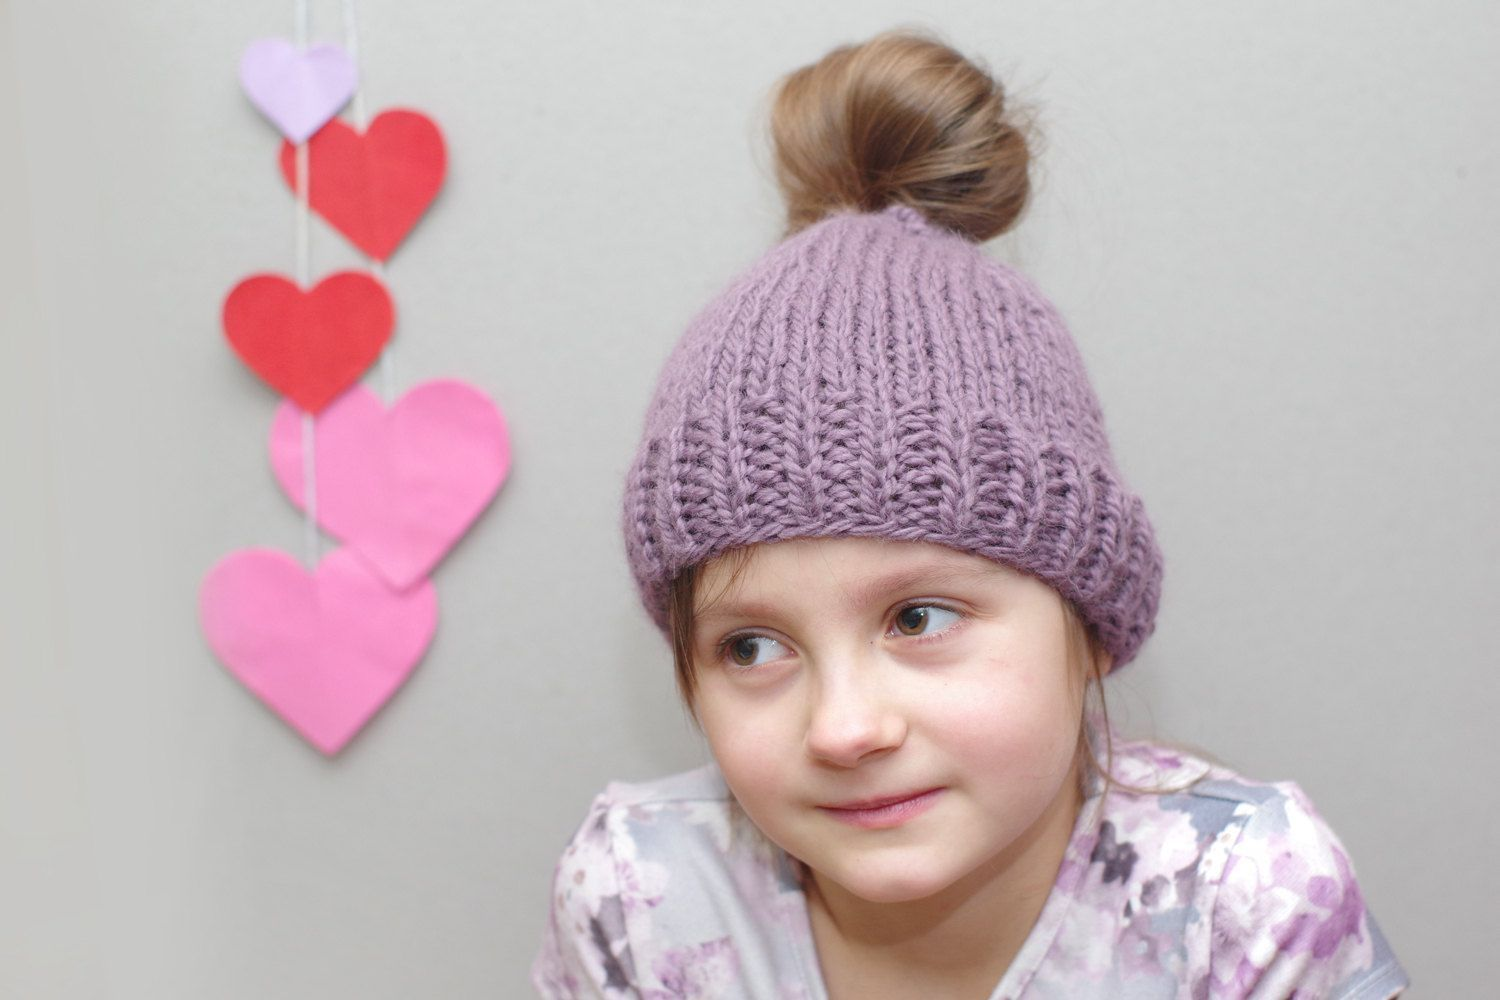 Messy bun hat, kids messy bun beanie, ponytail beanie, knit wool bun hat, violet hat, ready to ship by ESTtoYou on Etsy #kidsmessyhats Messy bun hat, kids messy bun beanie, ponytail beanie, knit wool bun hat, violet hat, ready to ship by ESTtoYou on Etsy #kidsmessyhats Messy bun hat, kids messy bun beanie, ponytail beanie, knit wool bun hat, violet hat, ready to ship by ESTtoYou on Etsy #kidsmessyhats Messy bun hat, kids messy bun beanie, ponytail beanie, knit wool bun hat, violet hat, ready to #kidsmessyhats